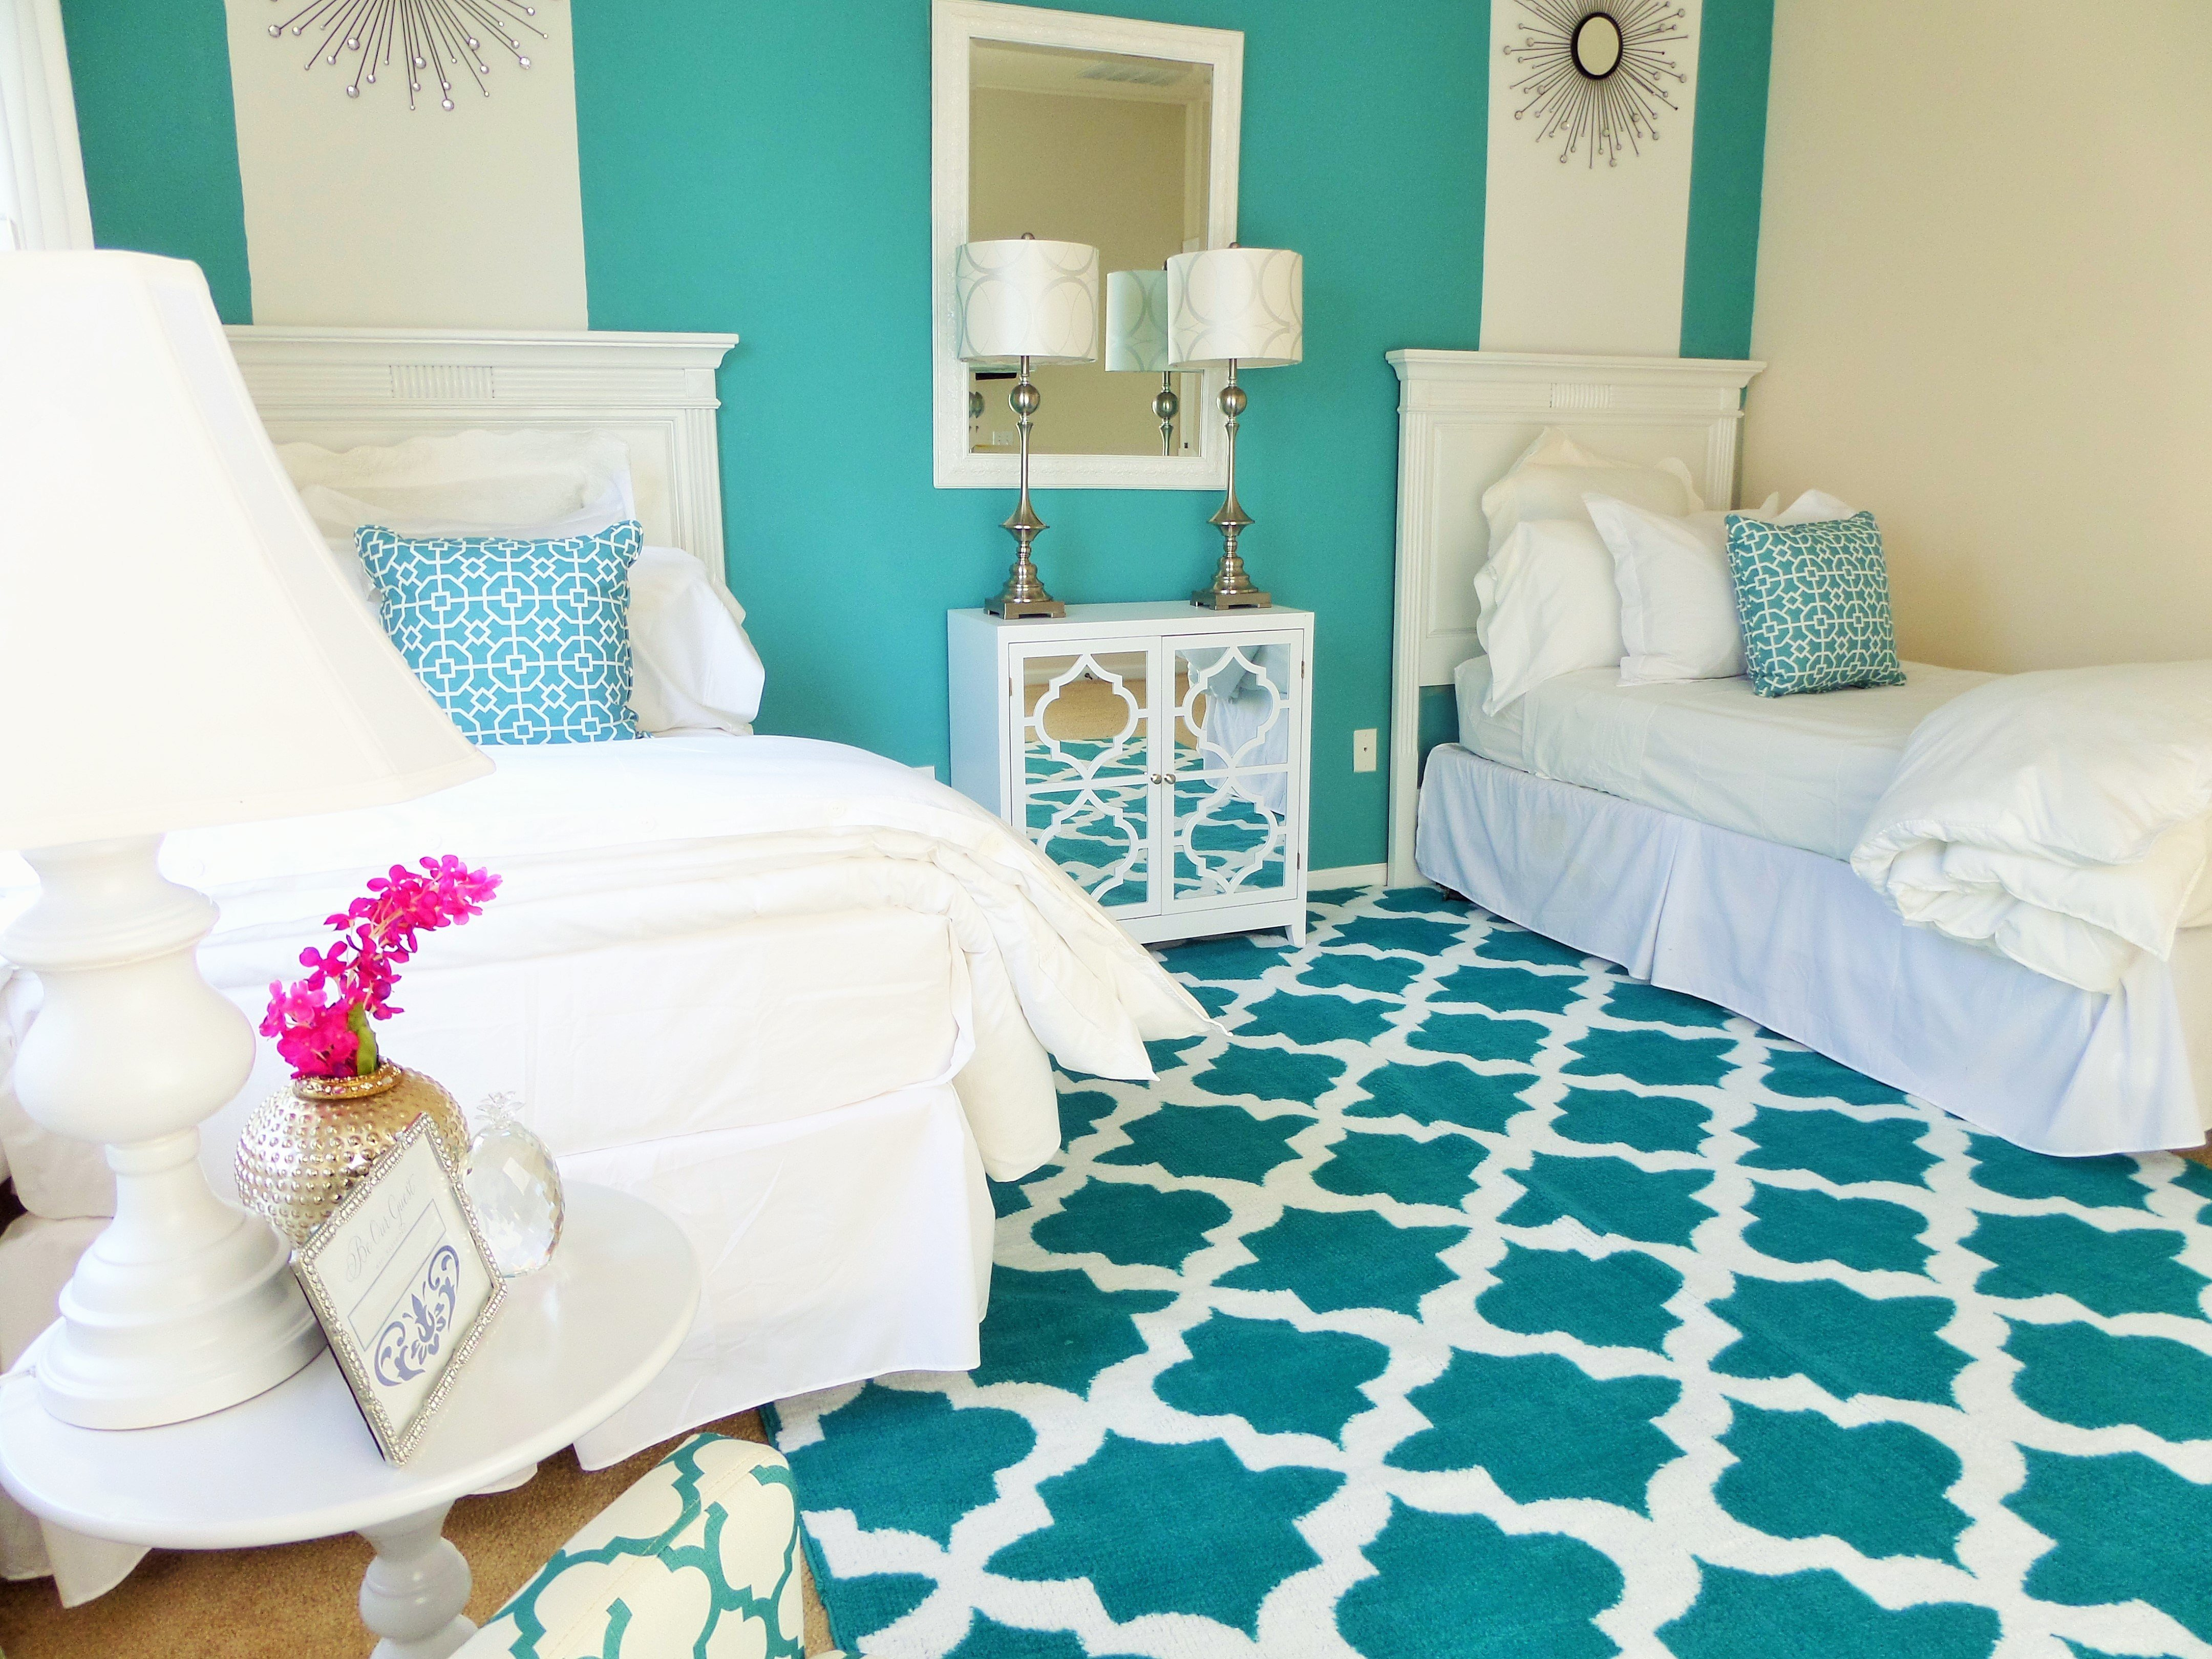 Best Guest Room One Room Two Beds – Be My Guest With Denise With Pictures